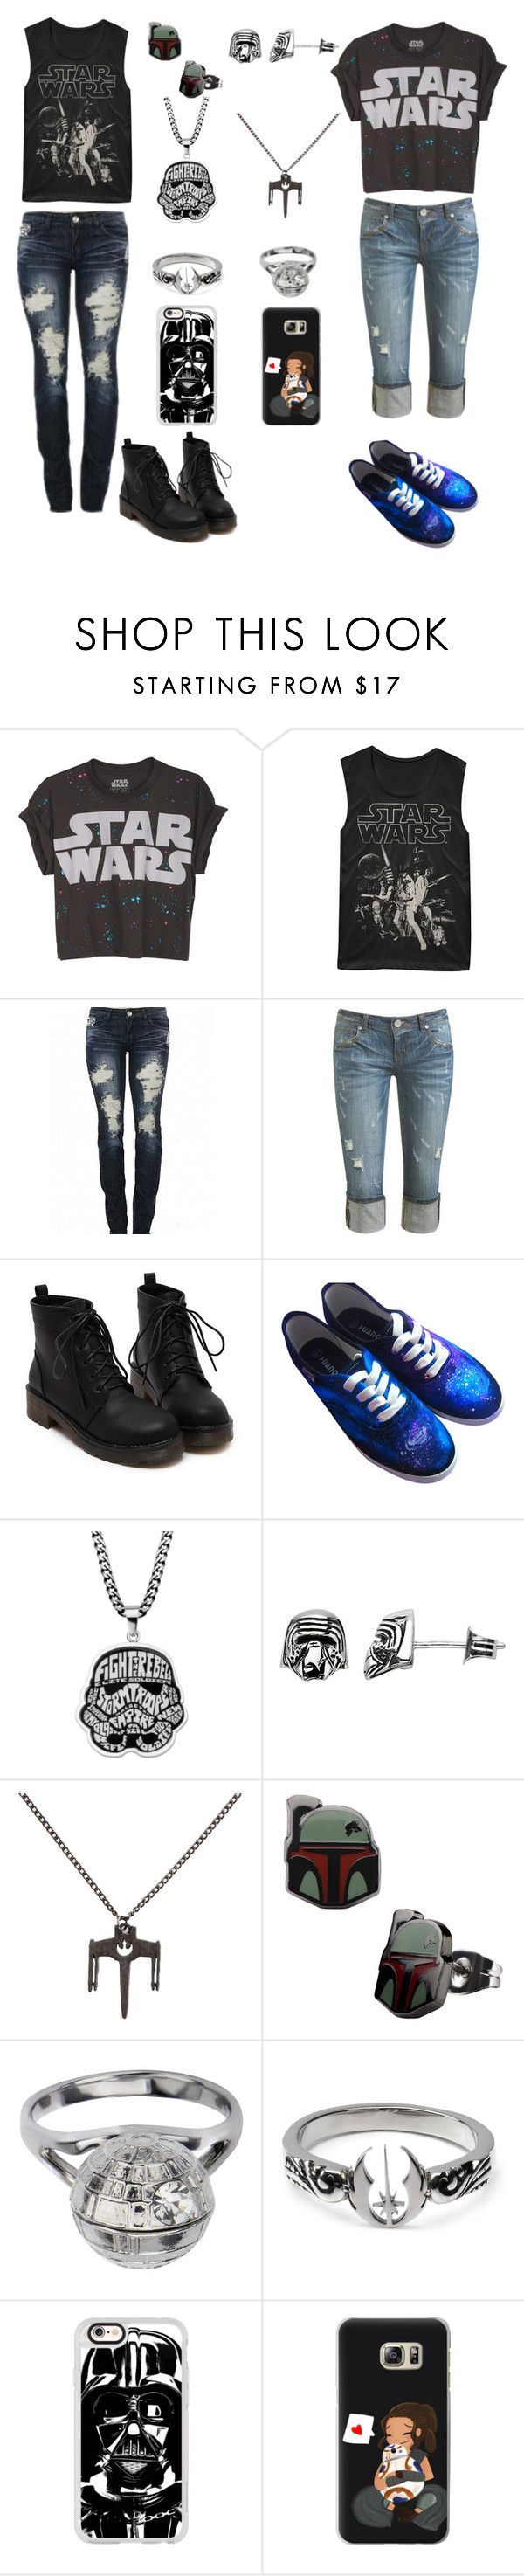 """May the 4th be with you (yes i went all out star-wars today)"" by awesomeandsuperanna ❤️ liked on Polyvore featuring Fifth Sun, DK, Wet Seal, Chicnova Fashion and Casetify"